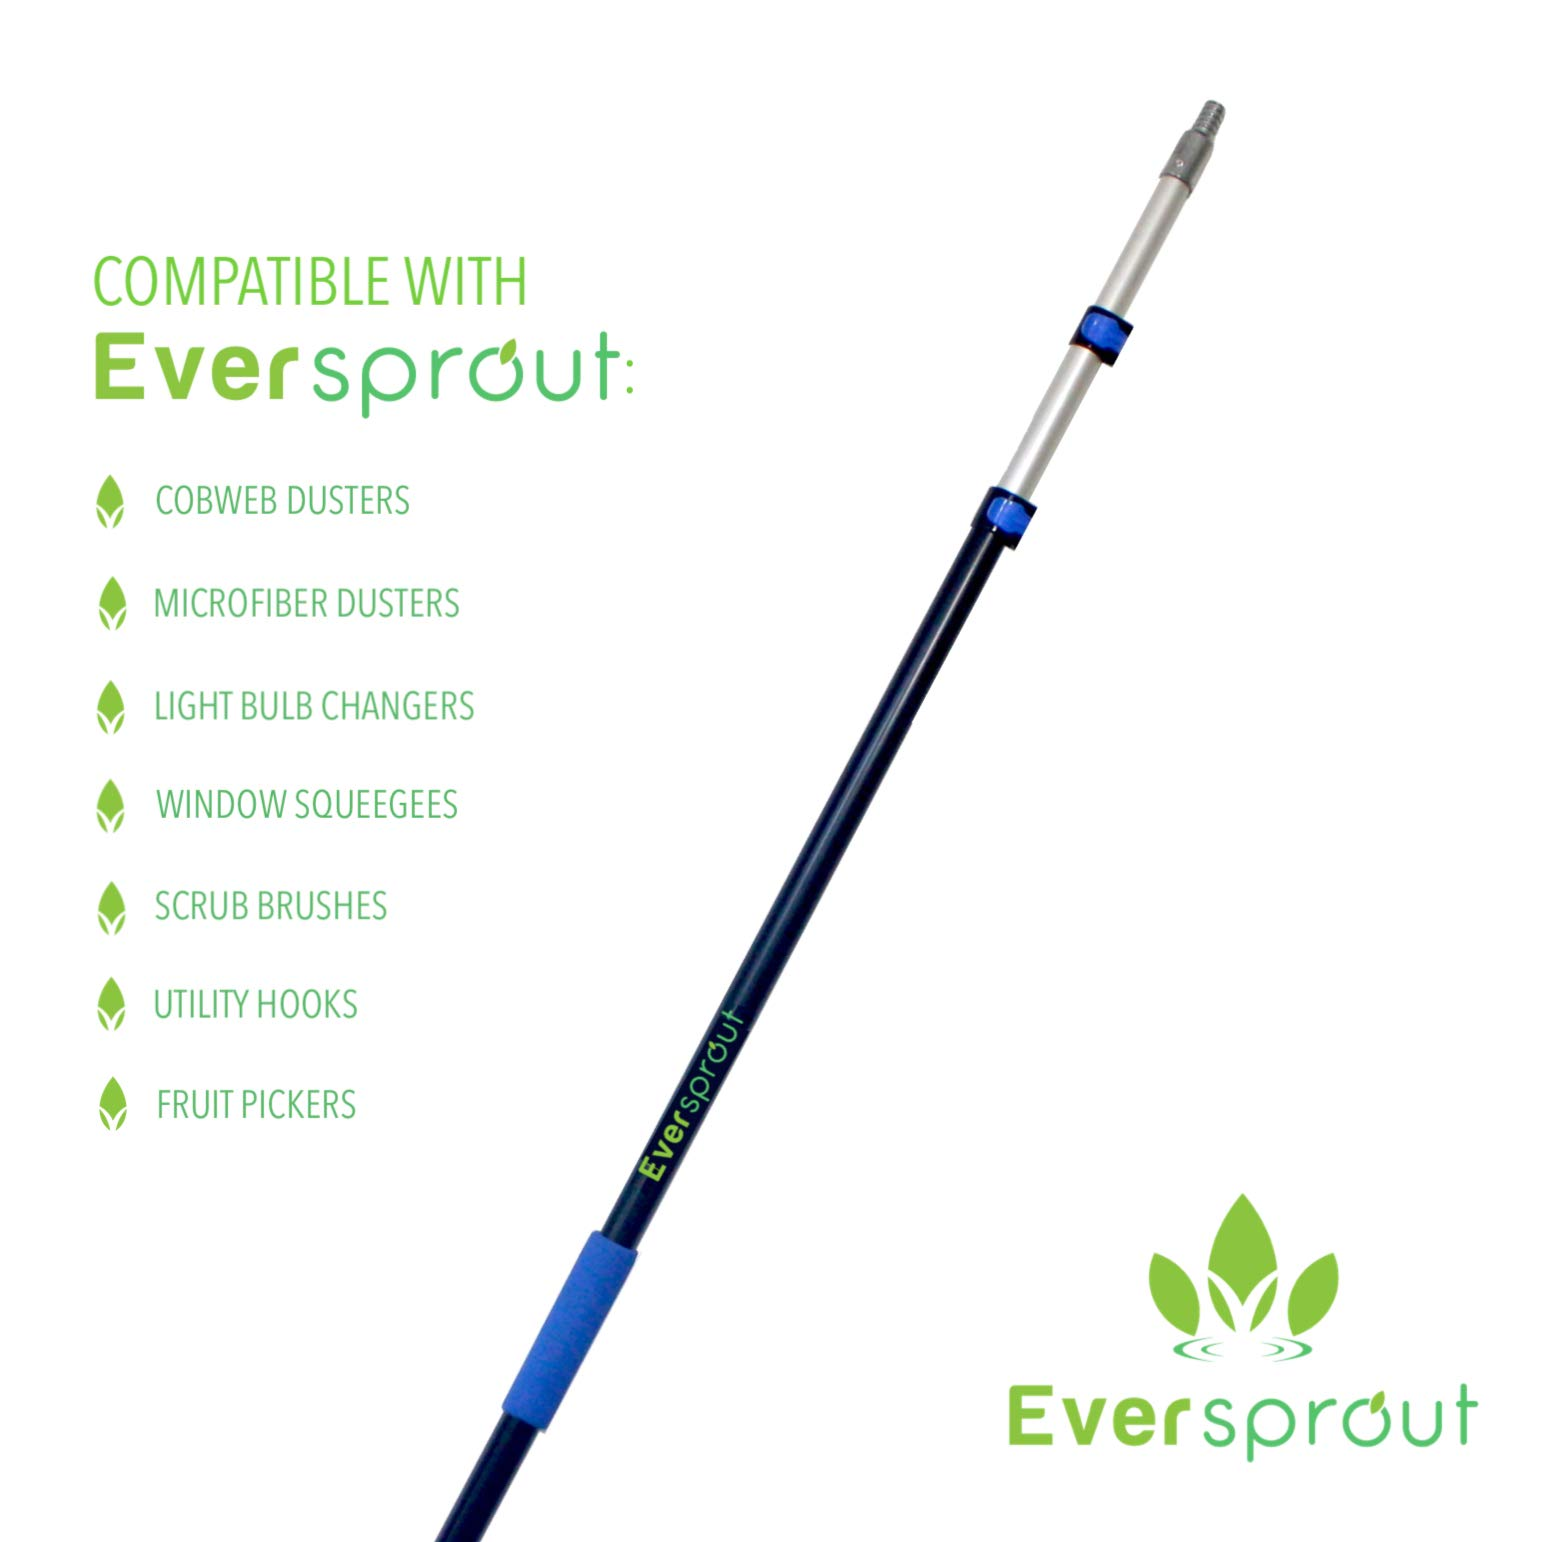 EVERSPROUT 5-to-12 Foot Scrub Brush (20 Foot Reach) | Built-in Rubber Bumper | Lightweight Extension Pole Handle | Soft Bristles to Wash Car, RV, Boat, Deck, Floor | Bumper Prevents Scratch by EVERSPROUT (Image #9)